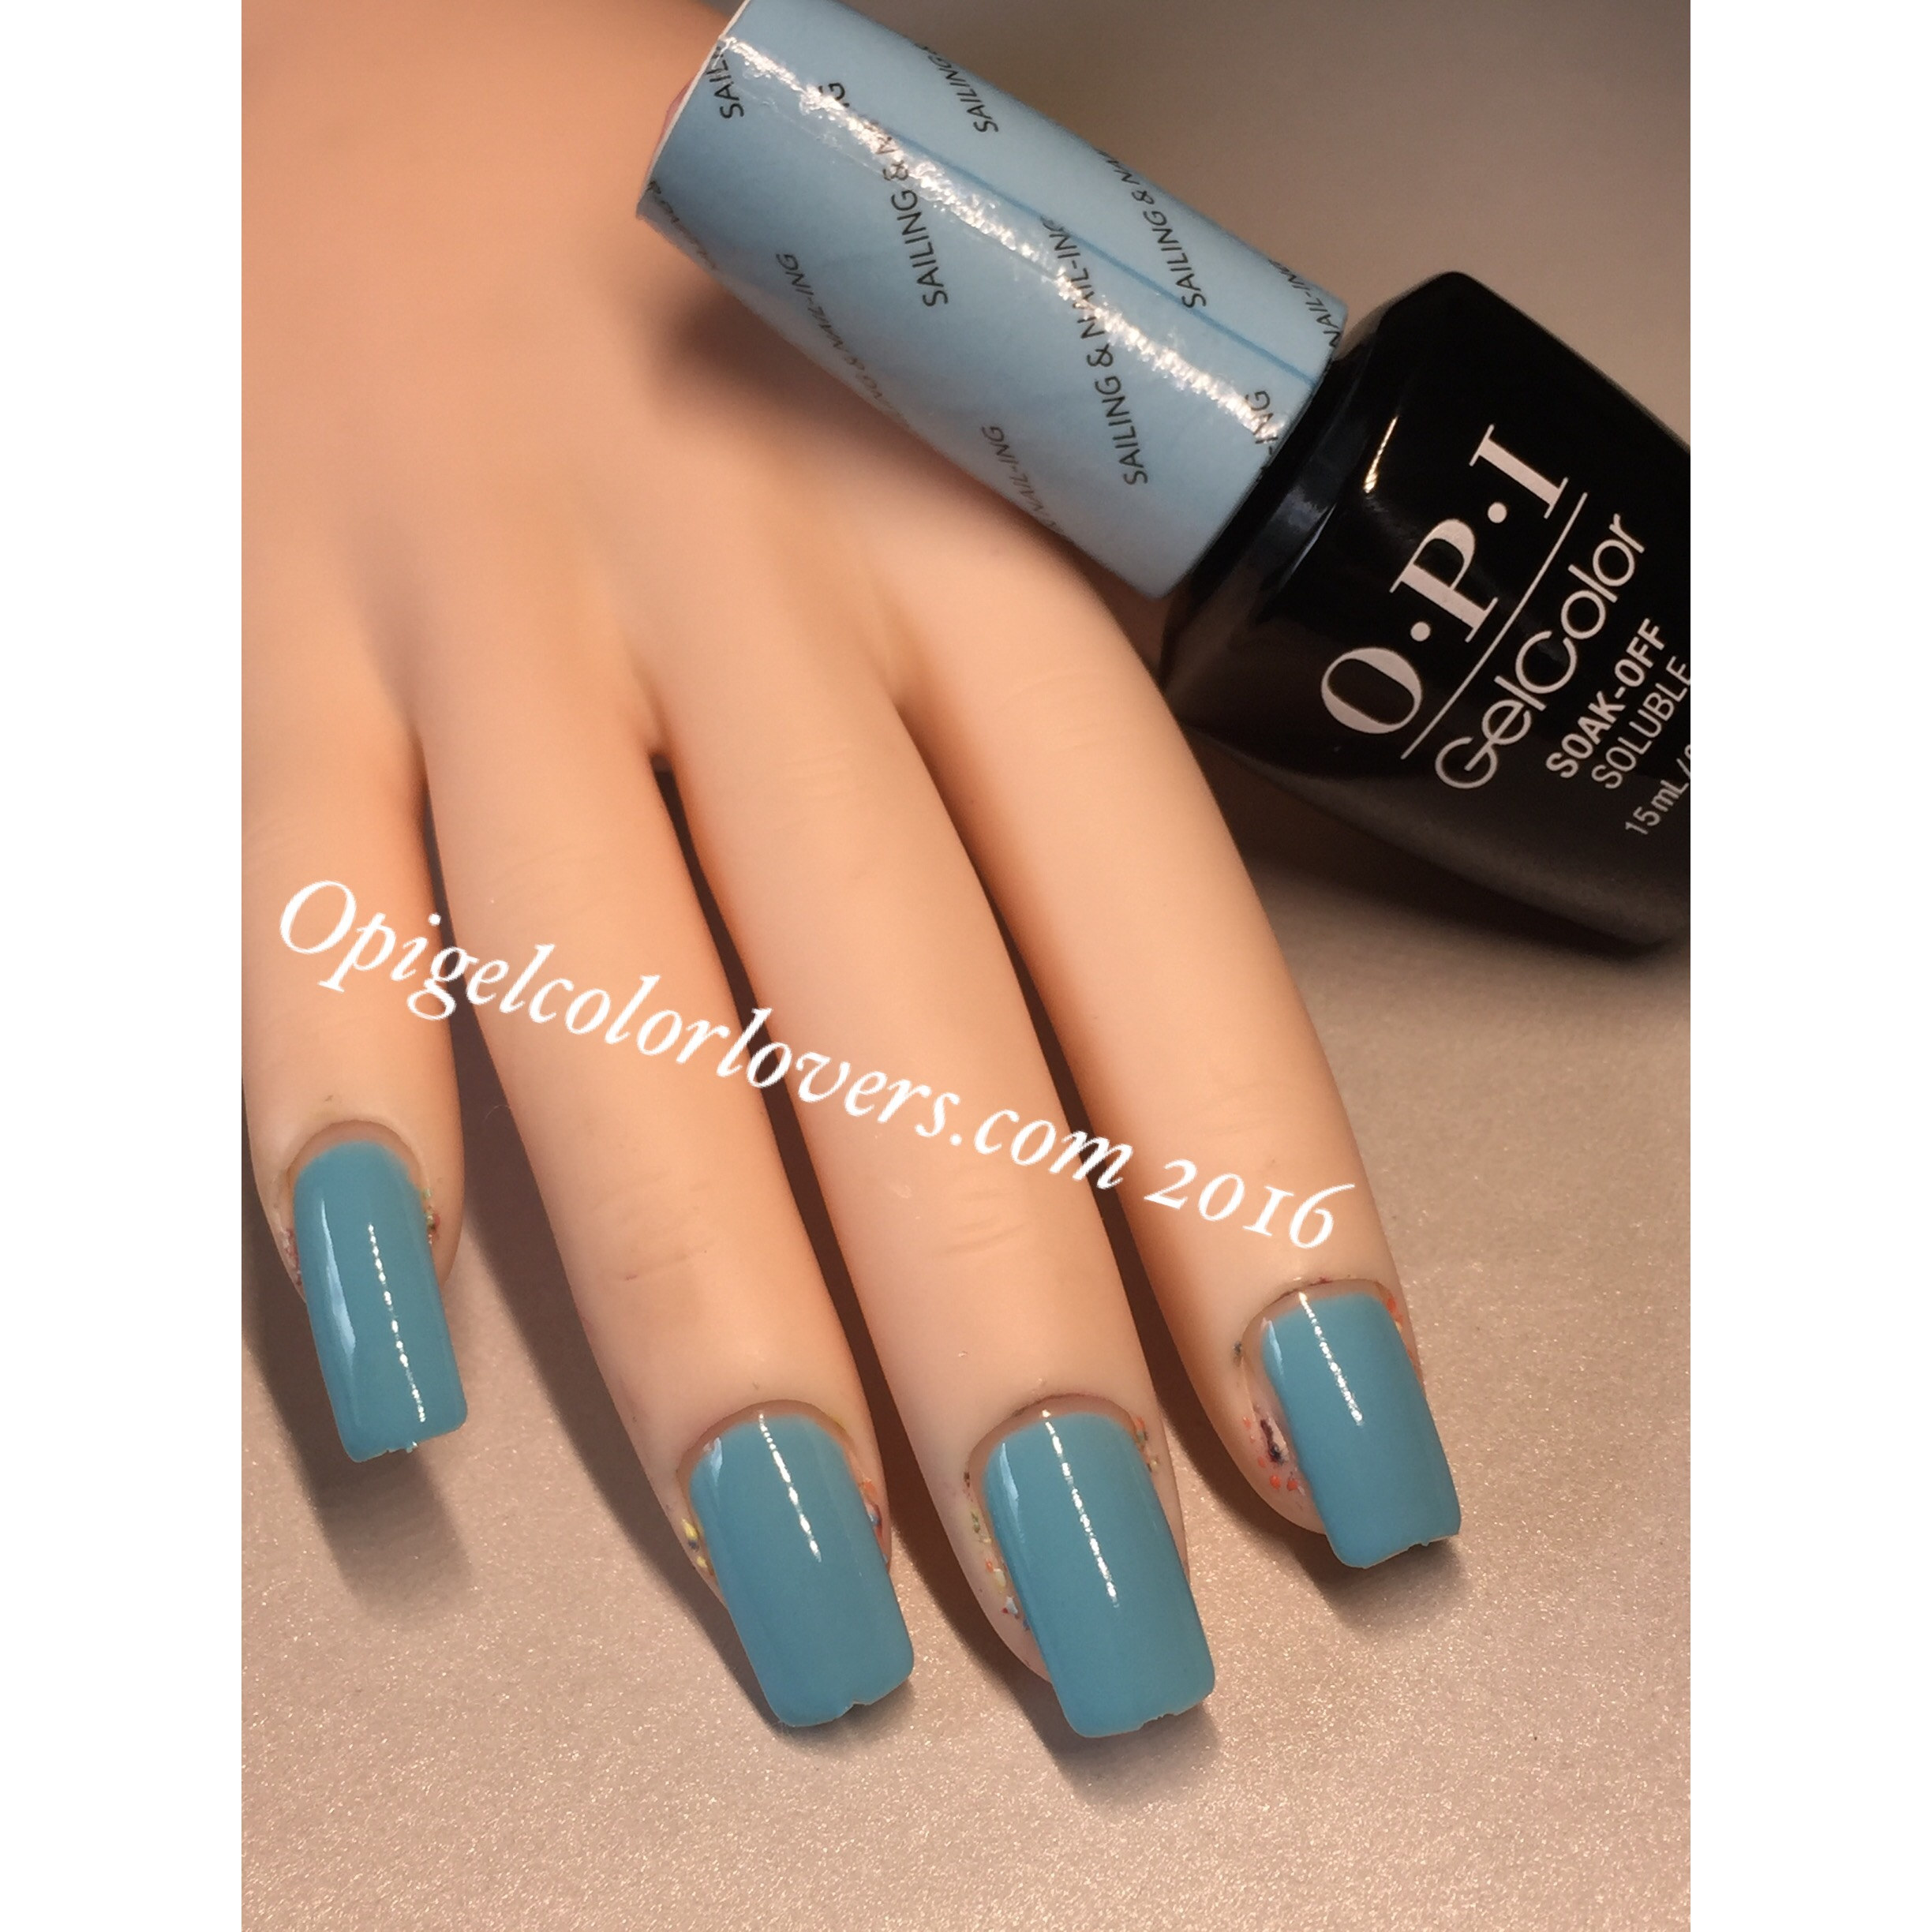 Opi 2016 collections-6424